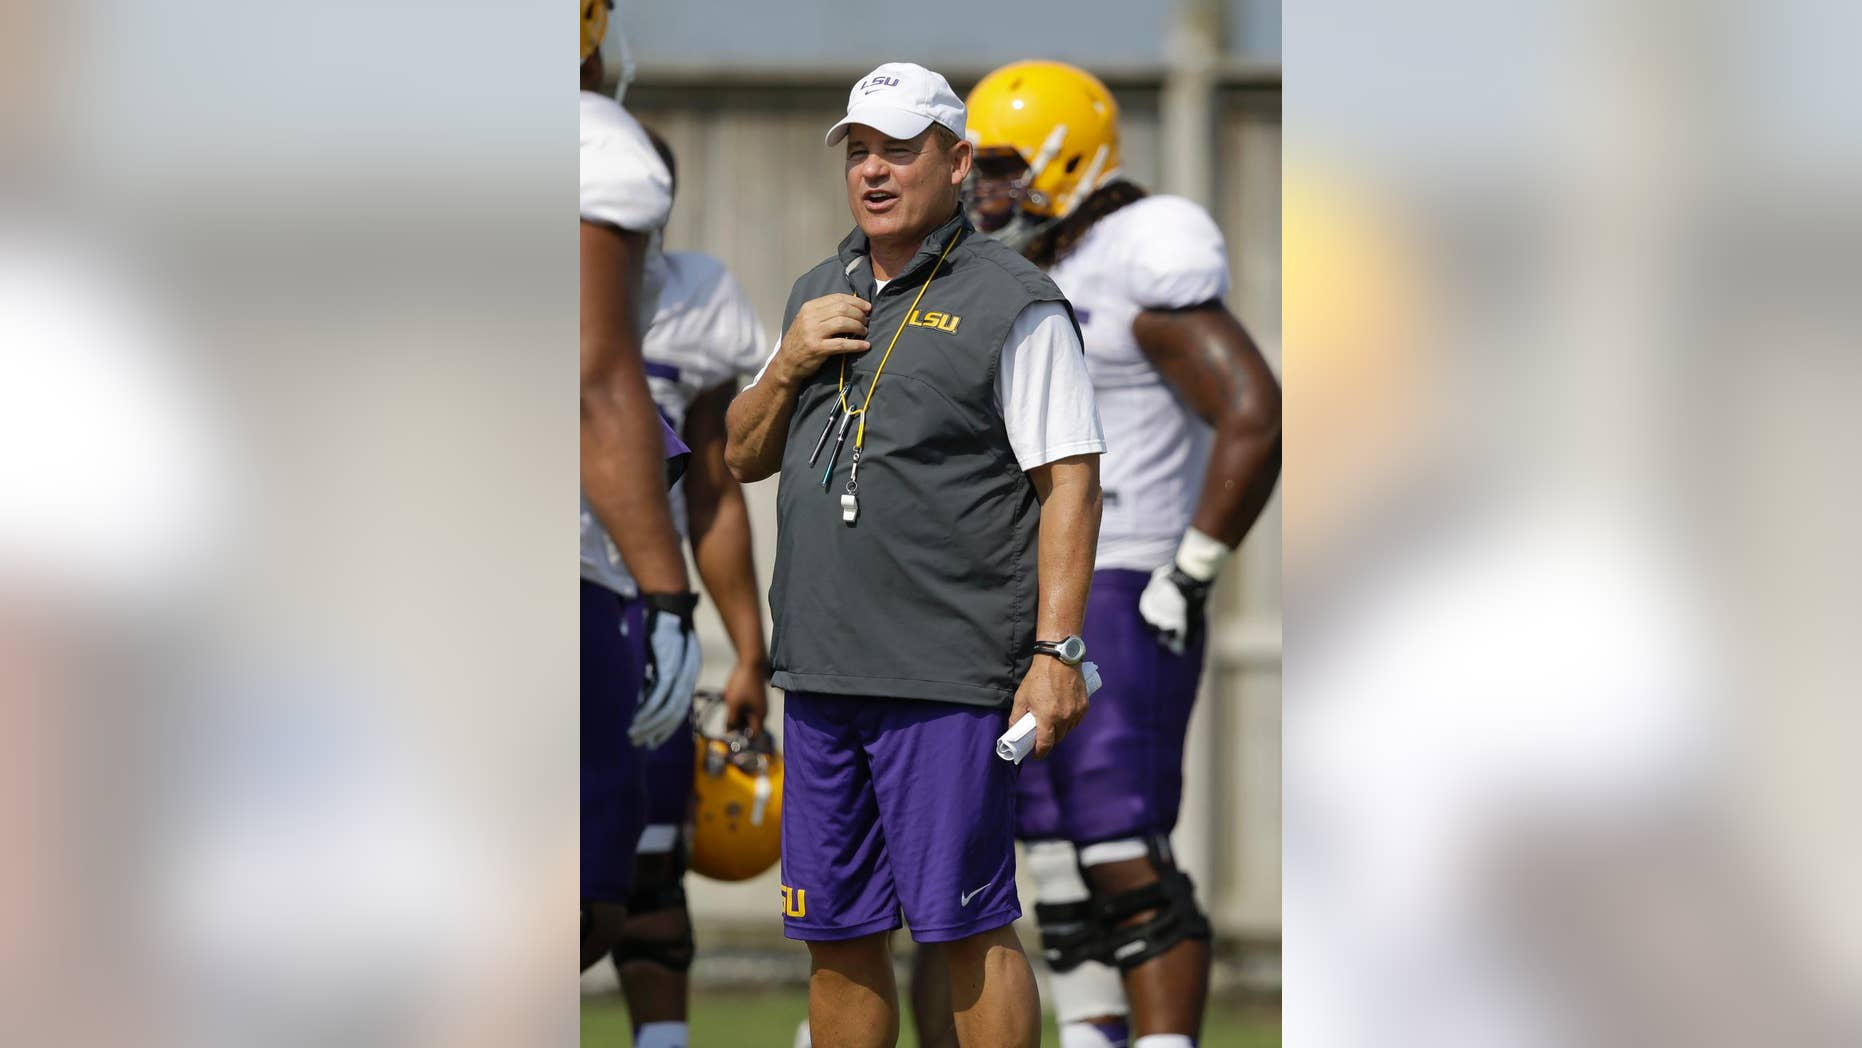 FILE - In this Aug. 6, 2014, file photo, LSU head coach Les Miles runs drills during their NCAA college football practice in Baton Rouge, La. Miles has yet to announce a starting quarterback and it remains to be seen how much of a role freshman running back Leonard Fournette will have in the offense. (AP Photo/Gerald Herbert, File)